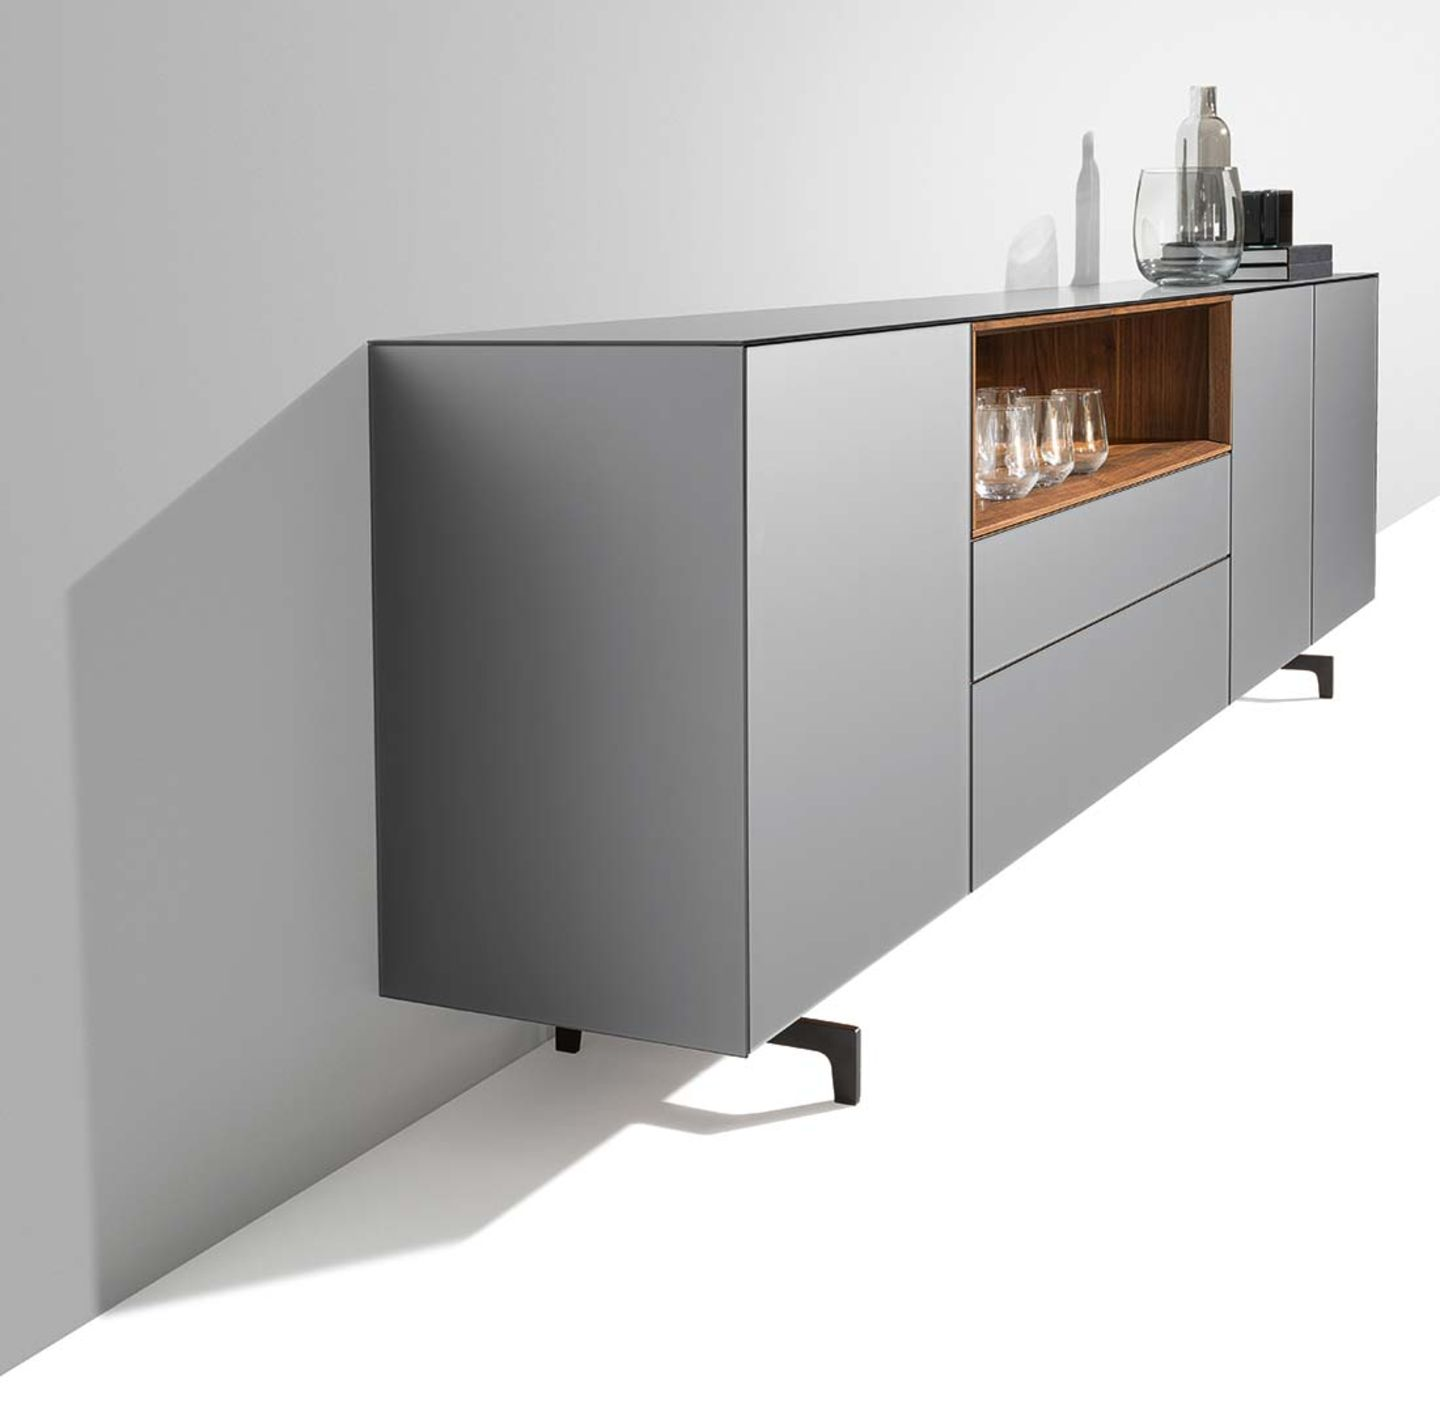 cubus pure sideboard in walnut, matt steel glass, from the side